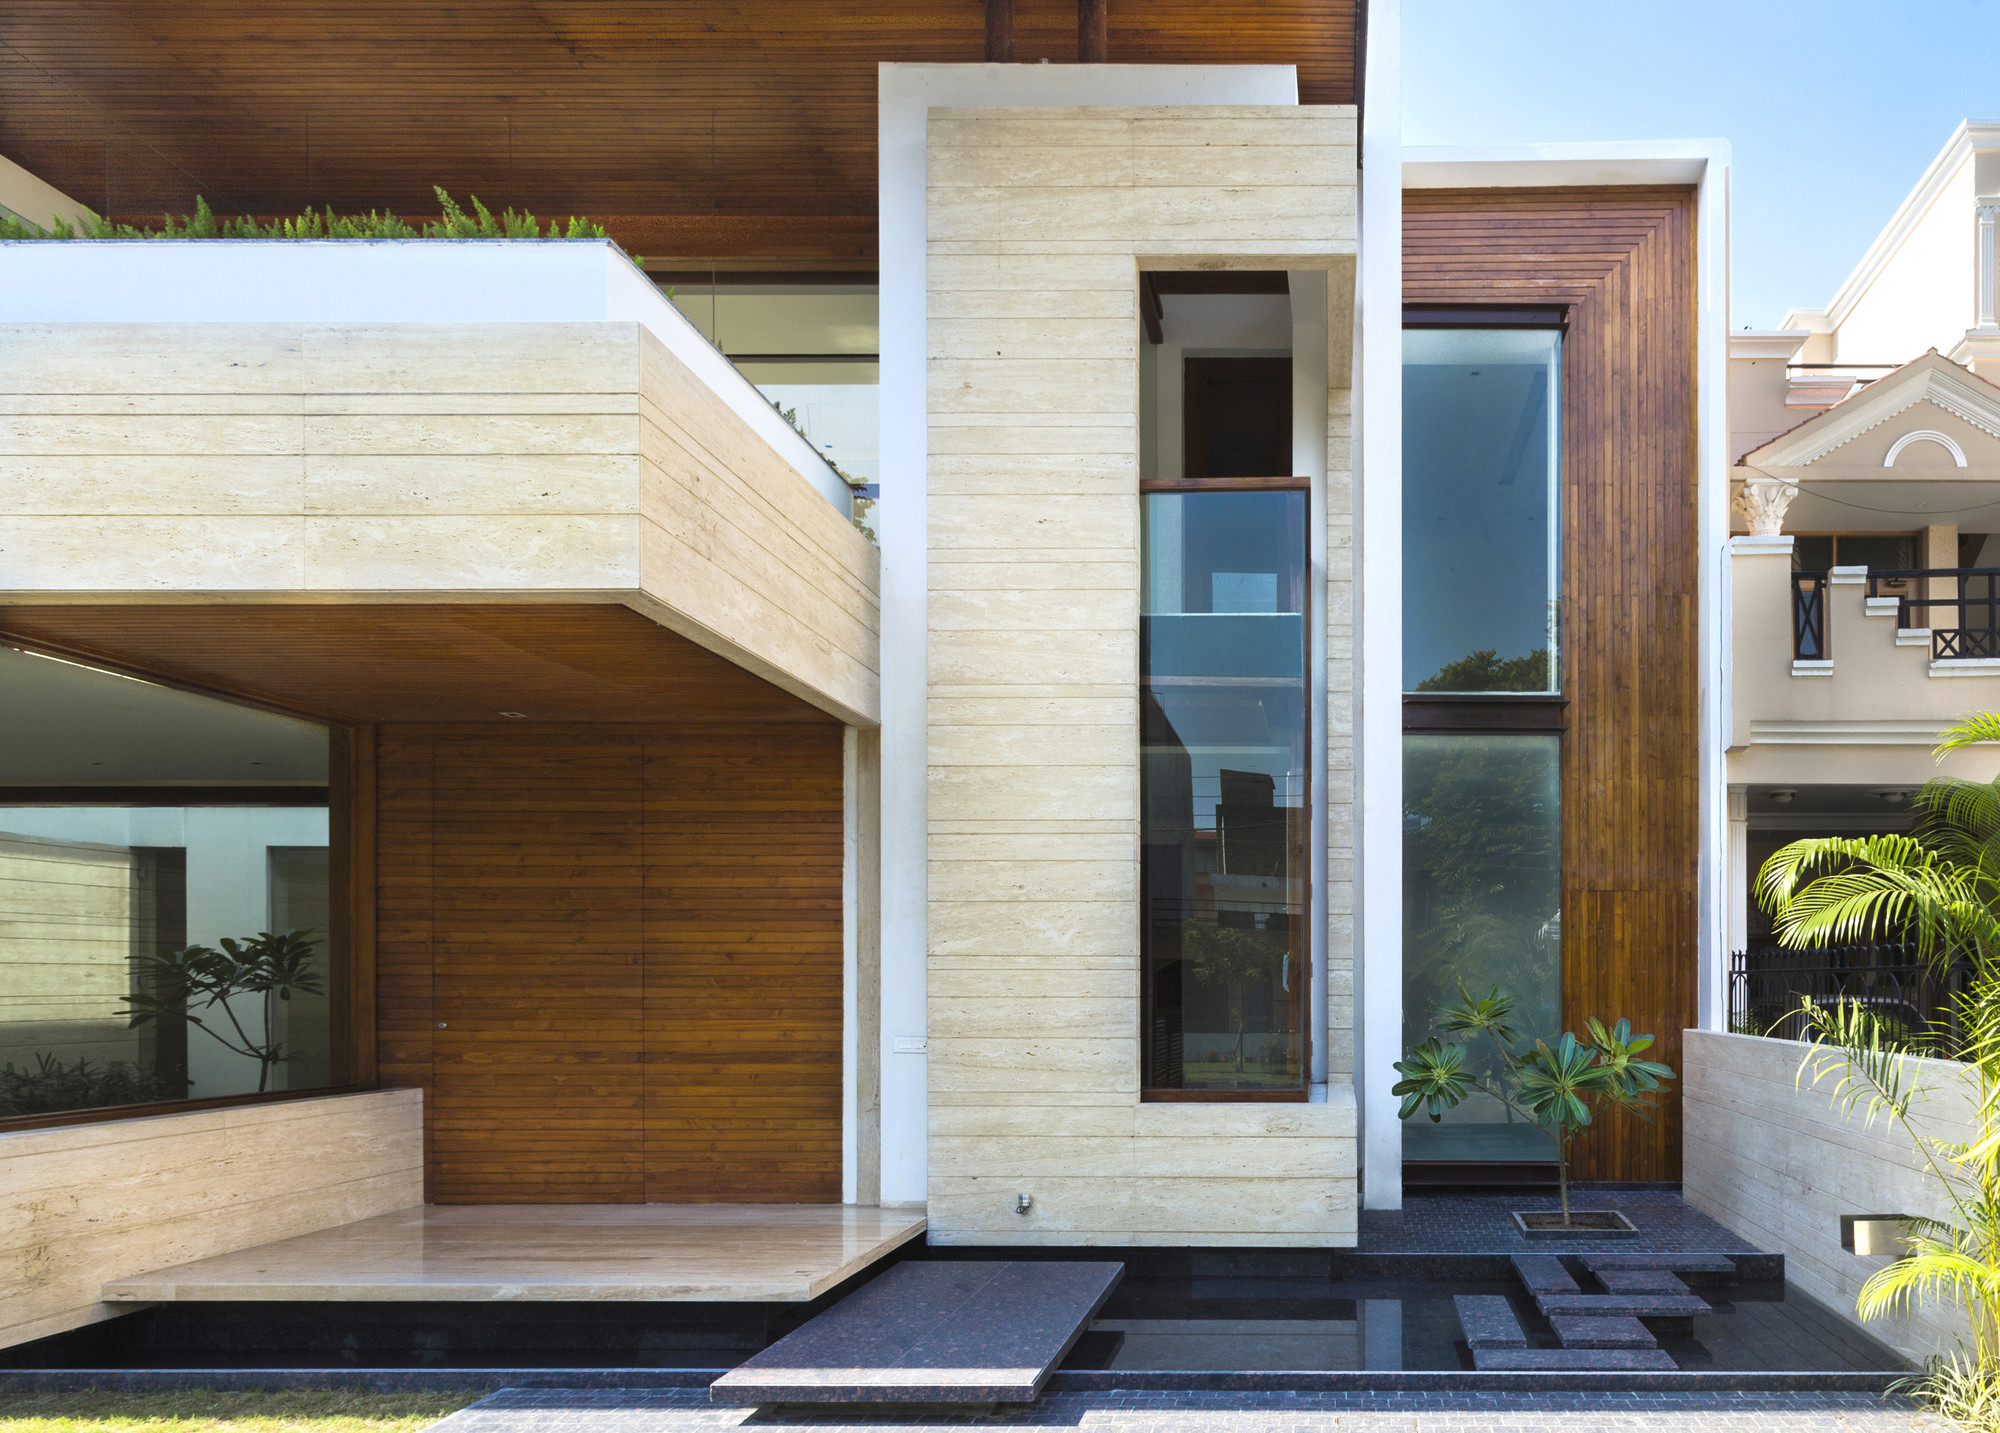 Gallery of House in Mohali / Charged Voids - 16